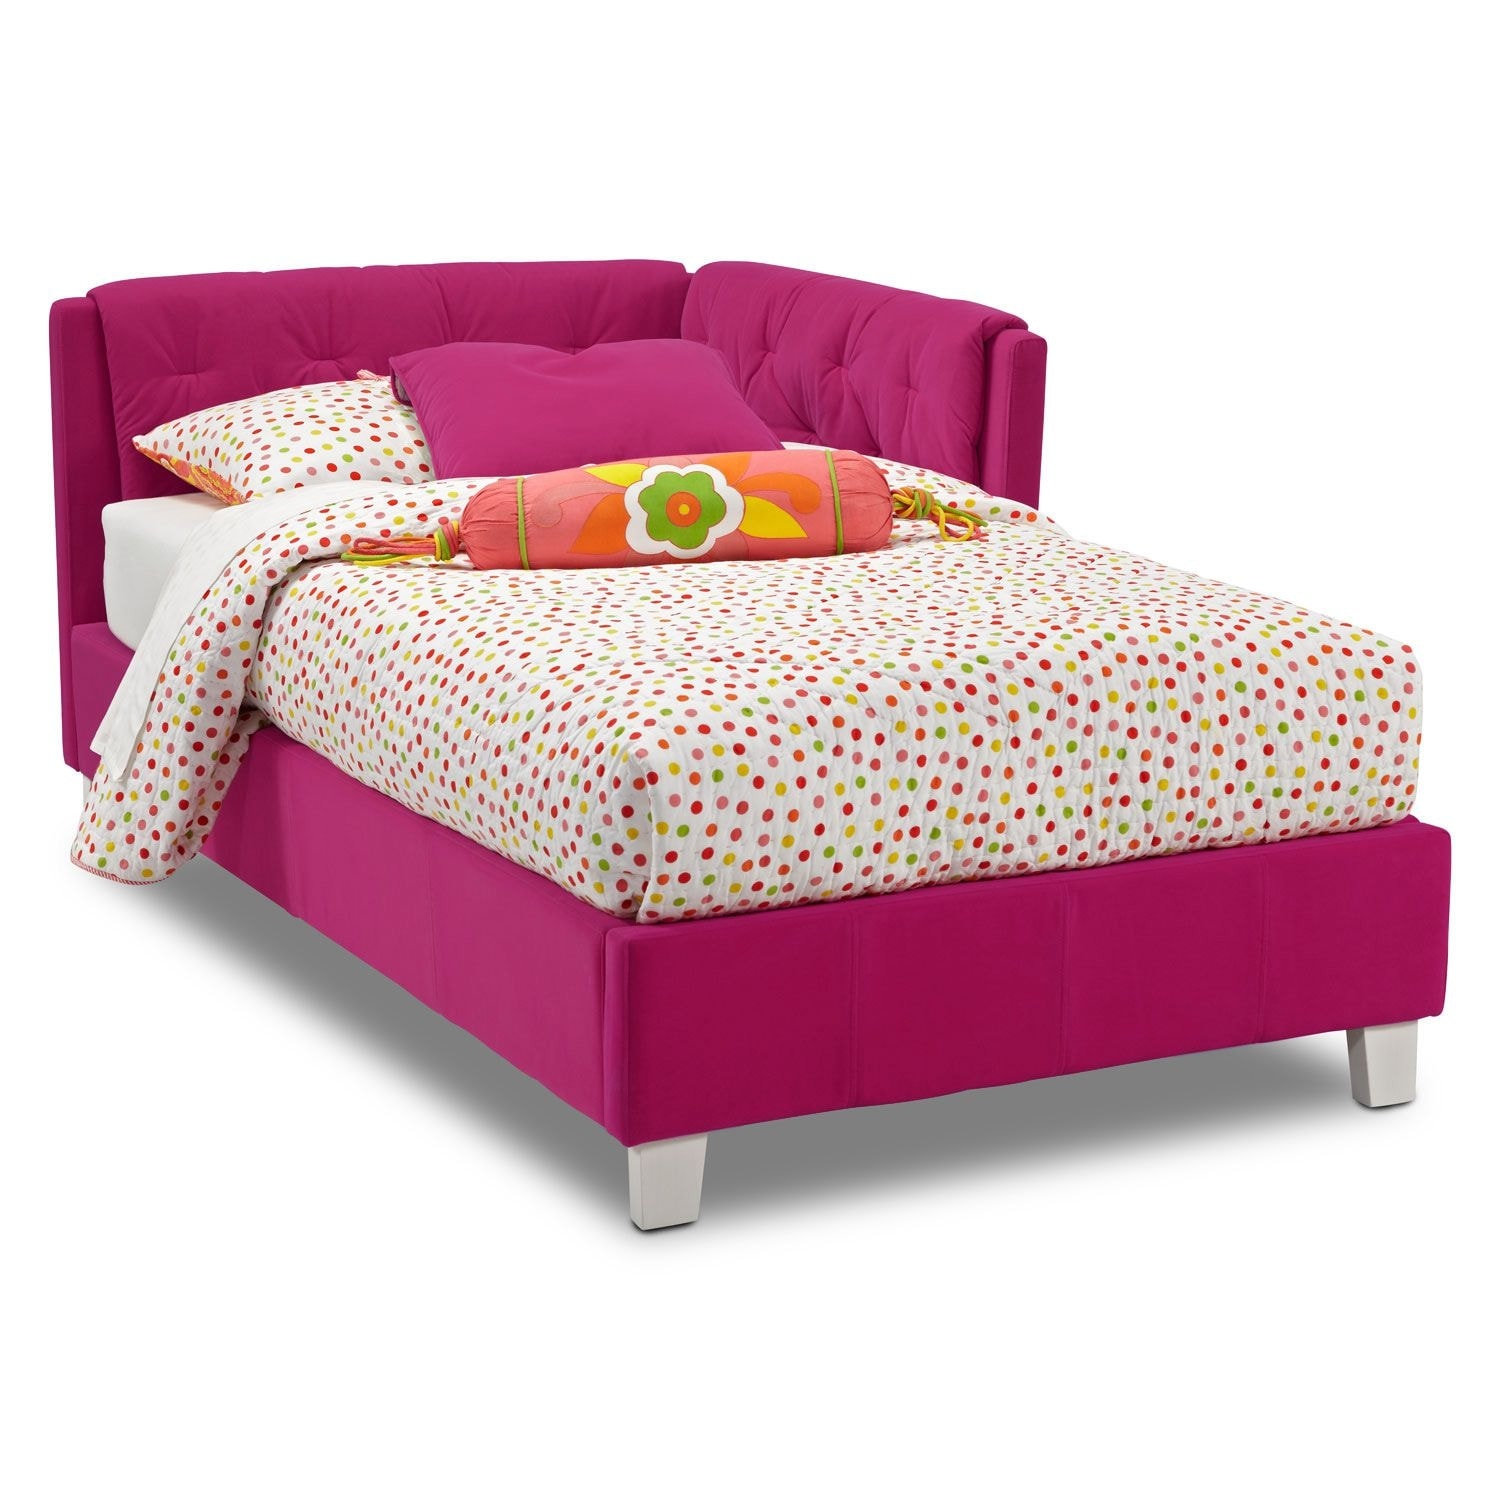 Kids Furniture - Jordan Corner Bed